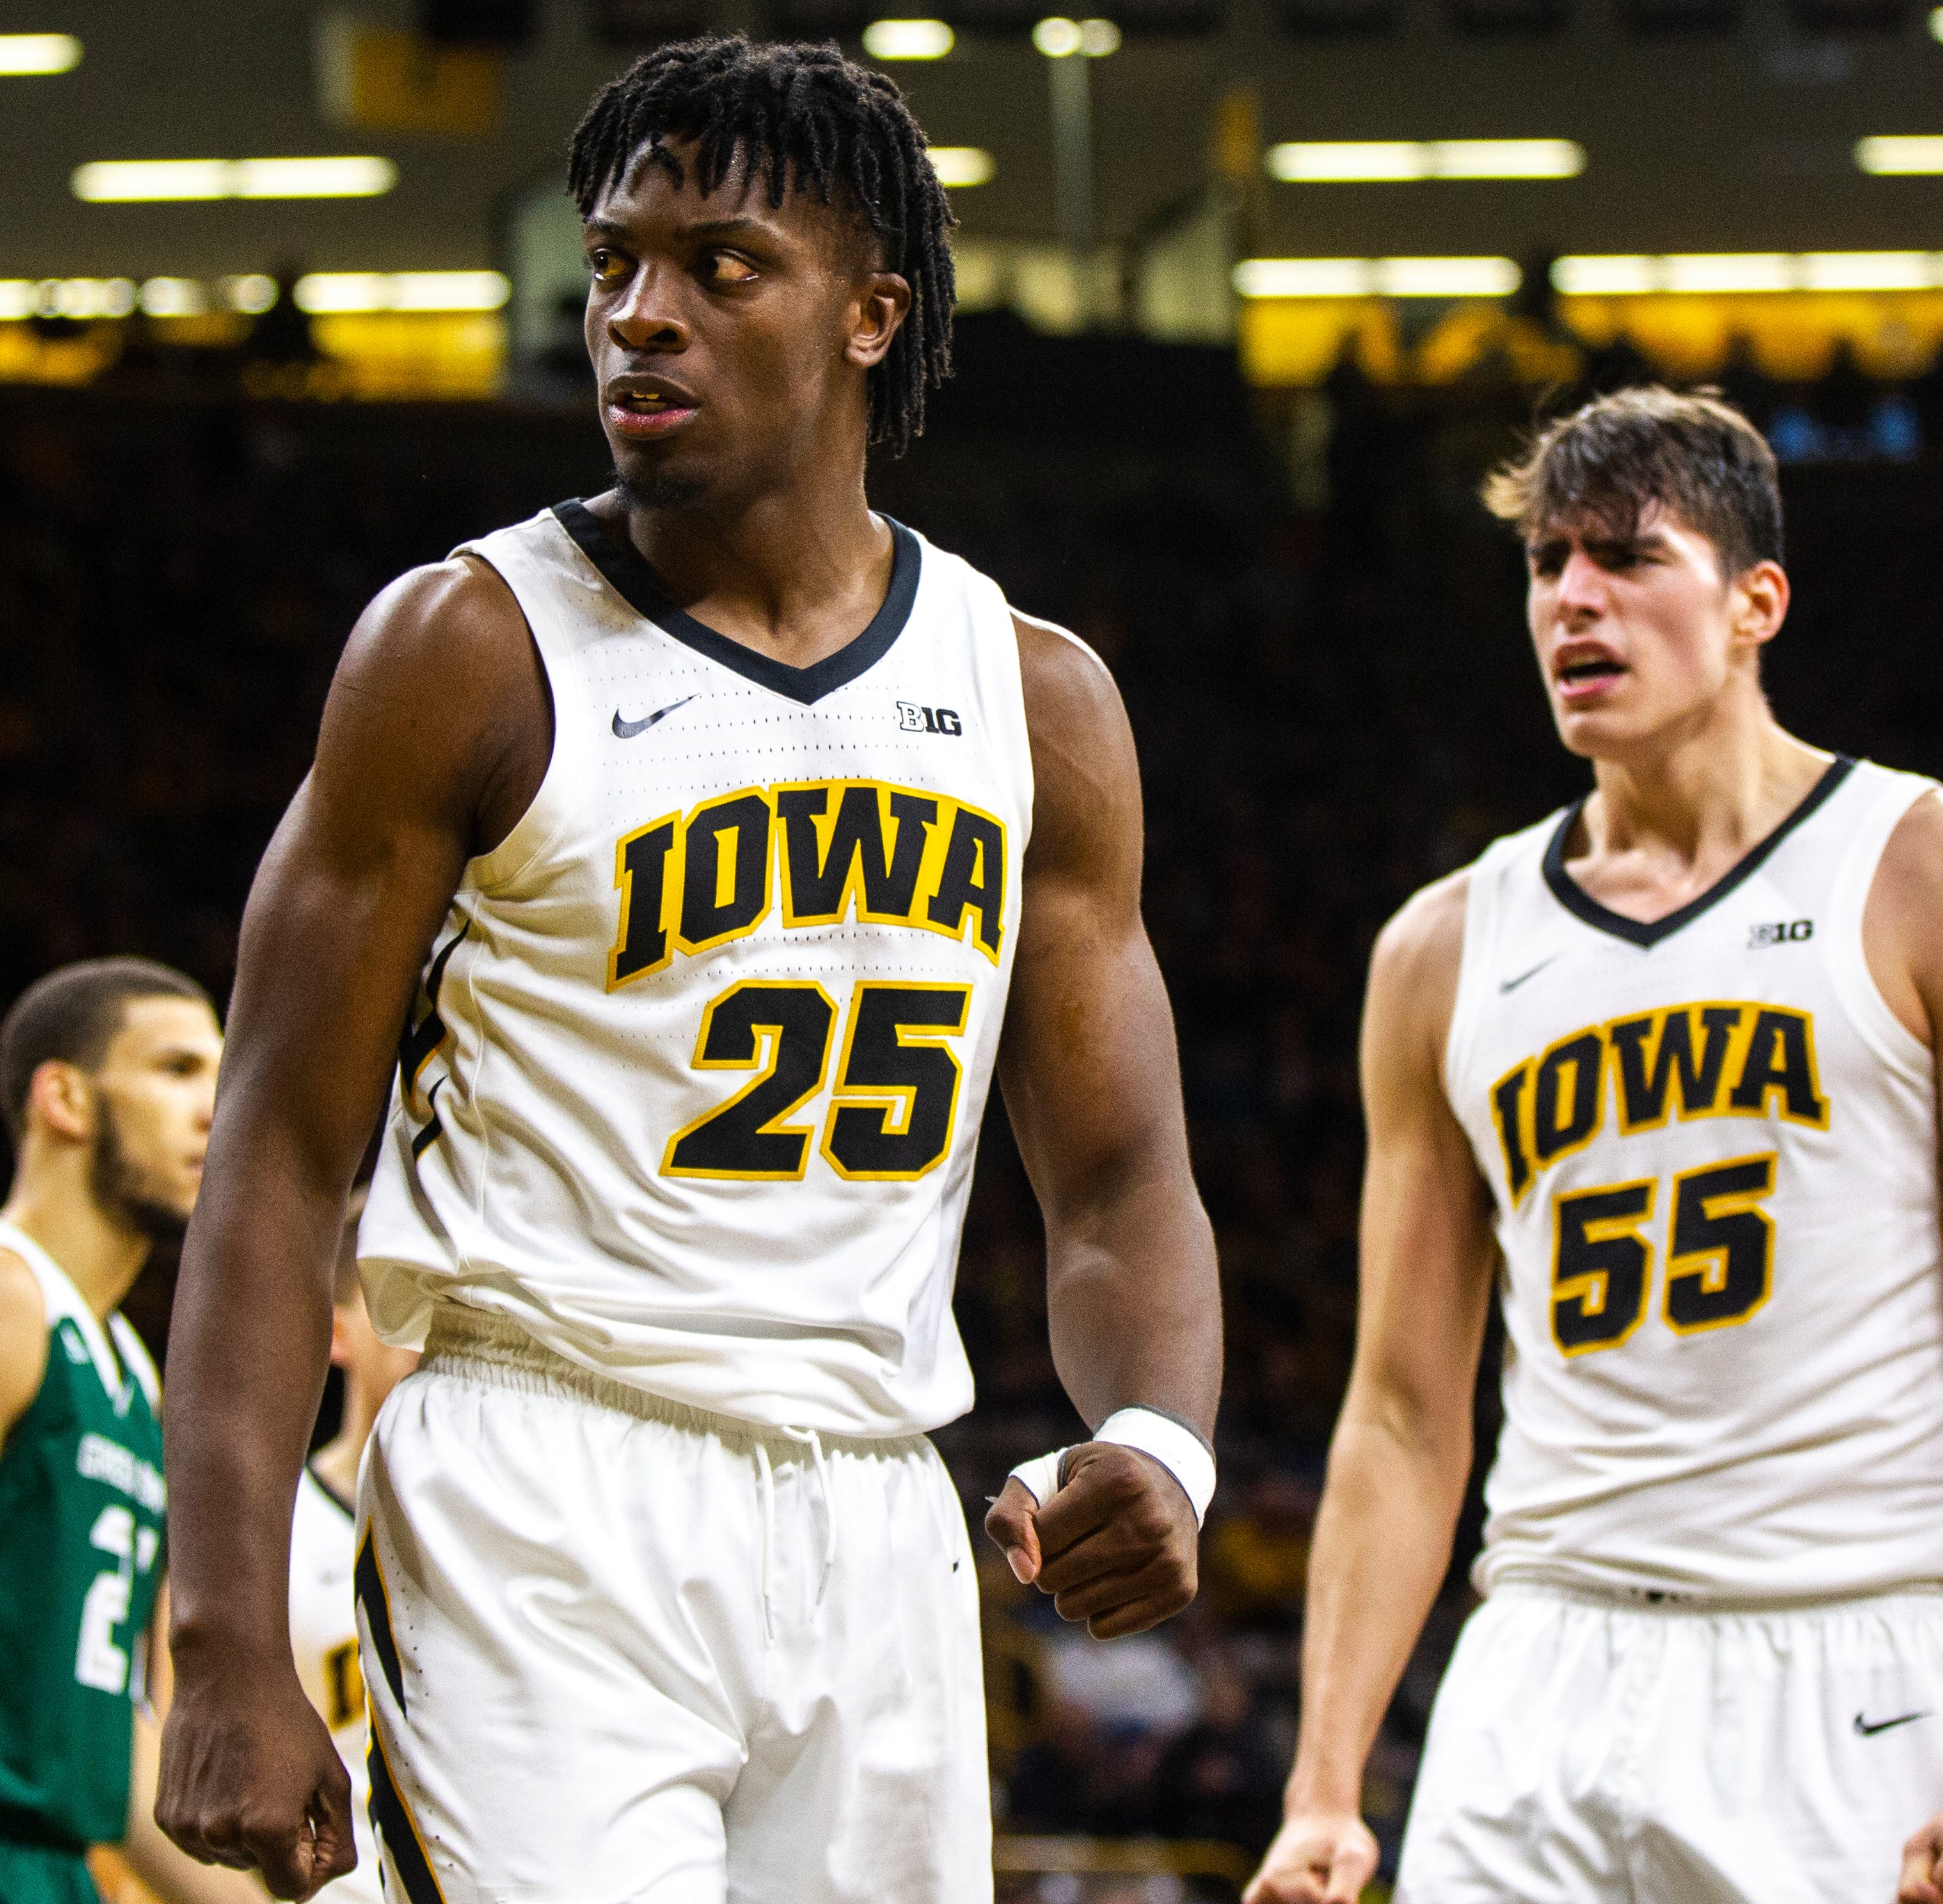 Iowa forward Tyler Cook (25) stares down Green Bay guard Cody Schwartz (33) after dunking over him during an NCAA men's basketball game in the 2K Empire Classic on Sunday, Nov. 11, 2018, at Carver-Hawkeye Arena in Iowa City.